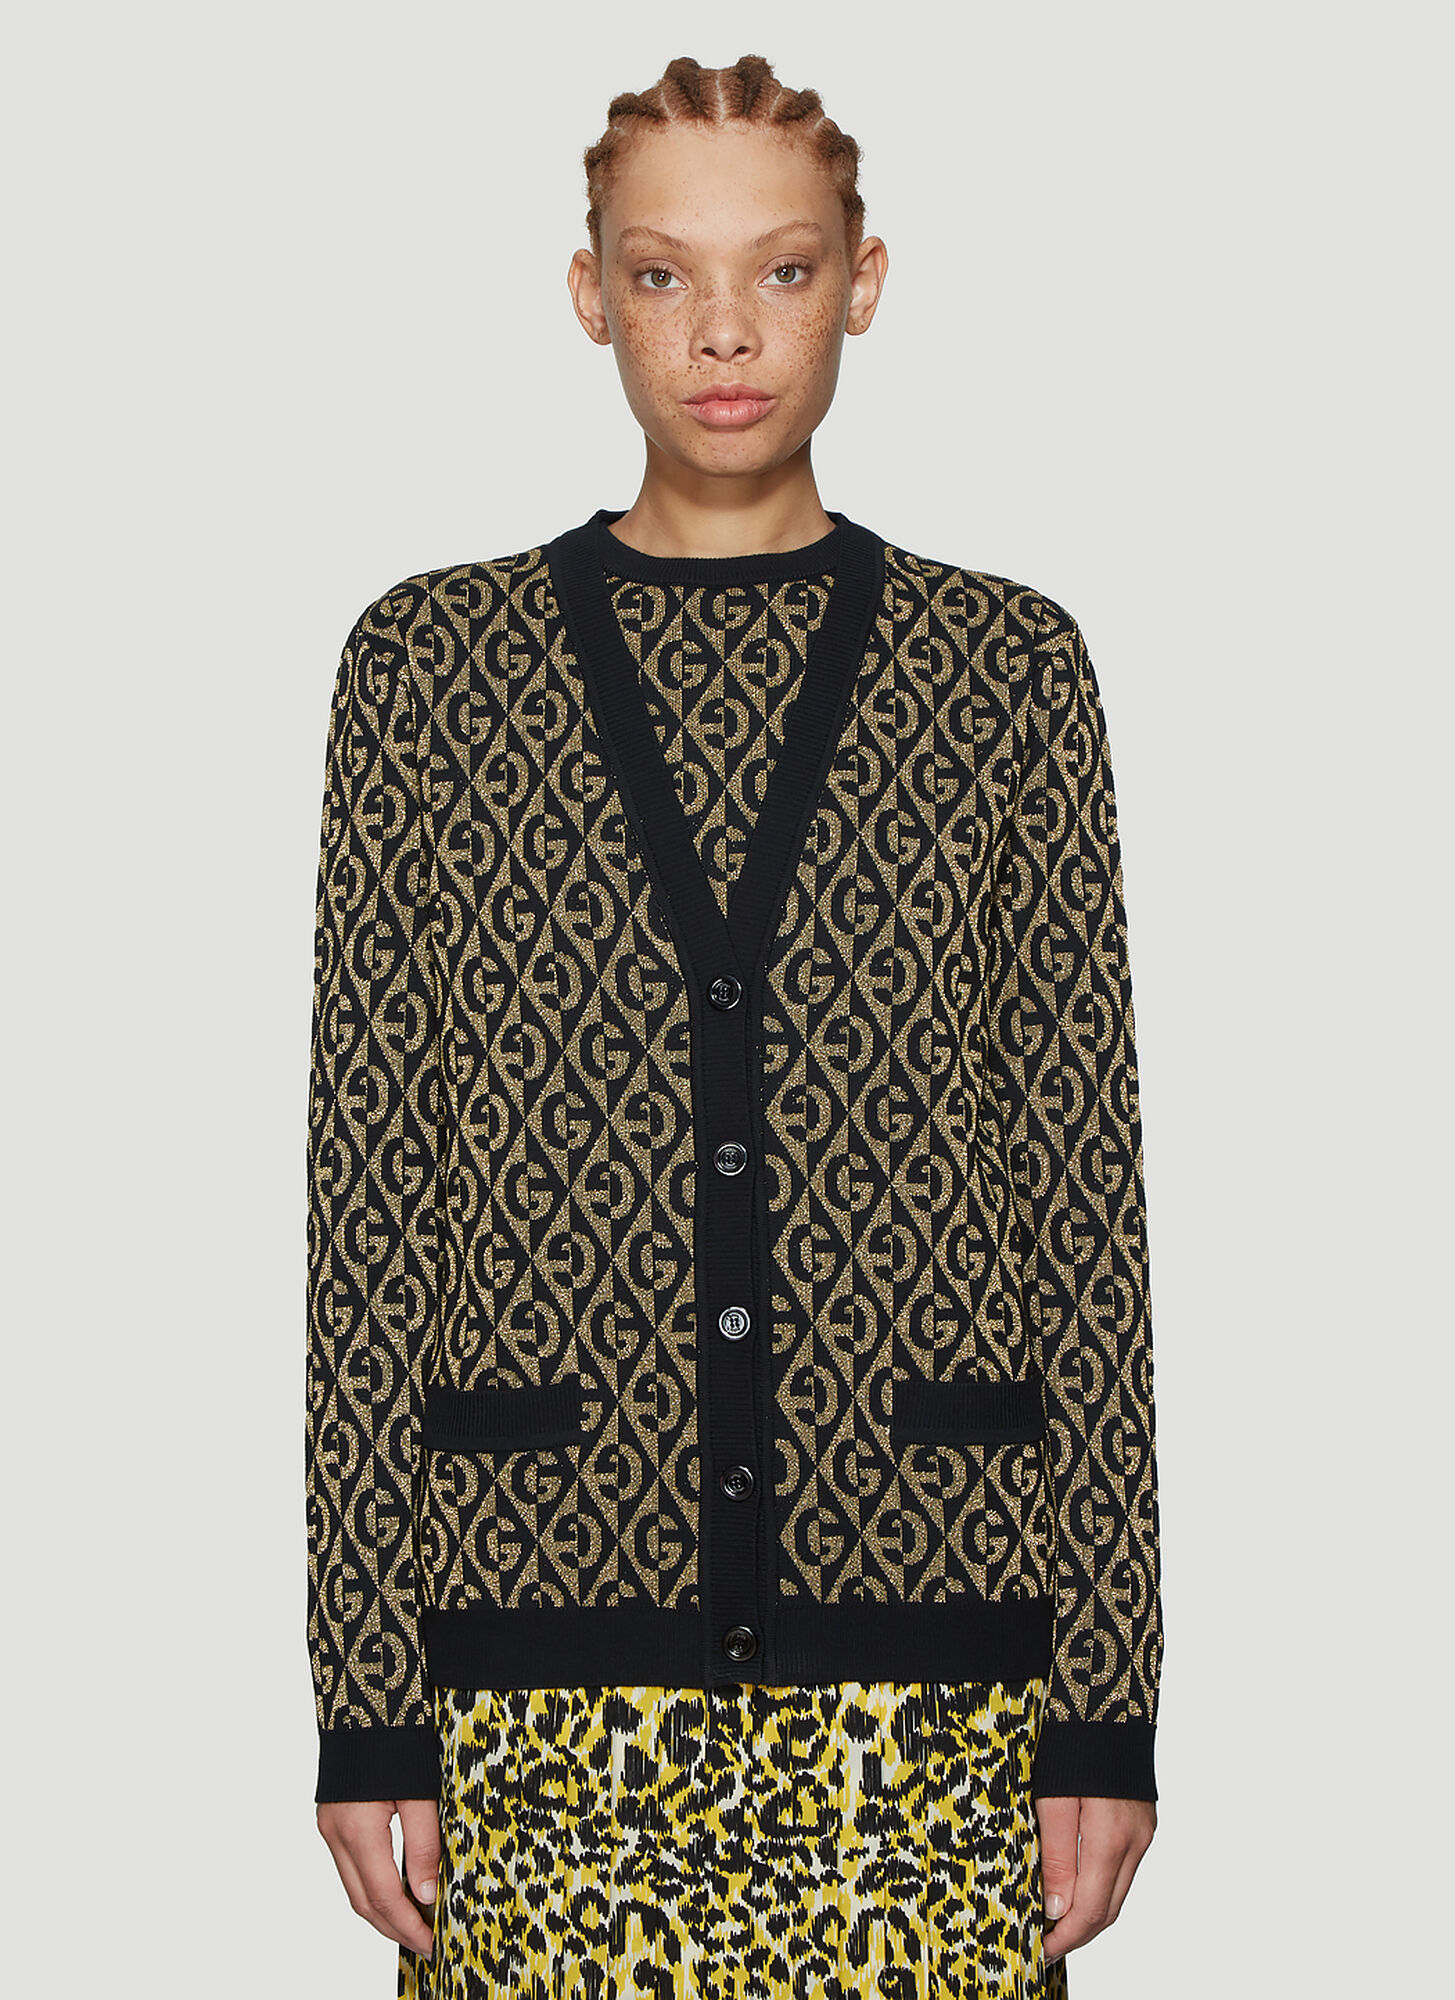 Gucci Metallic Knit Cardigan in Black